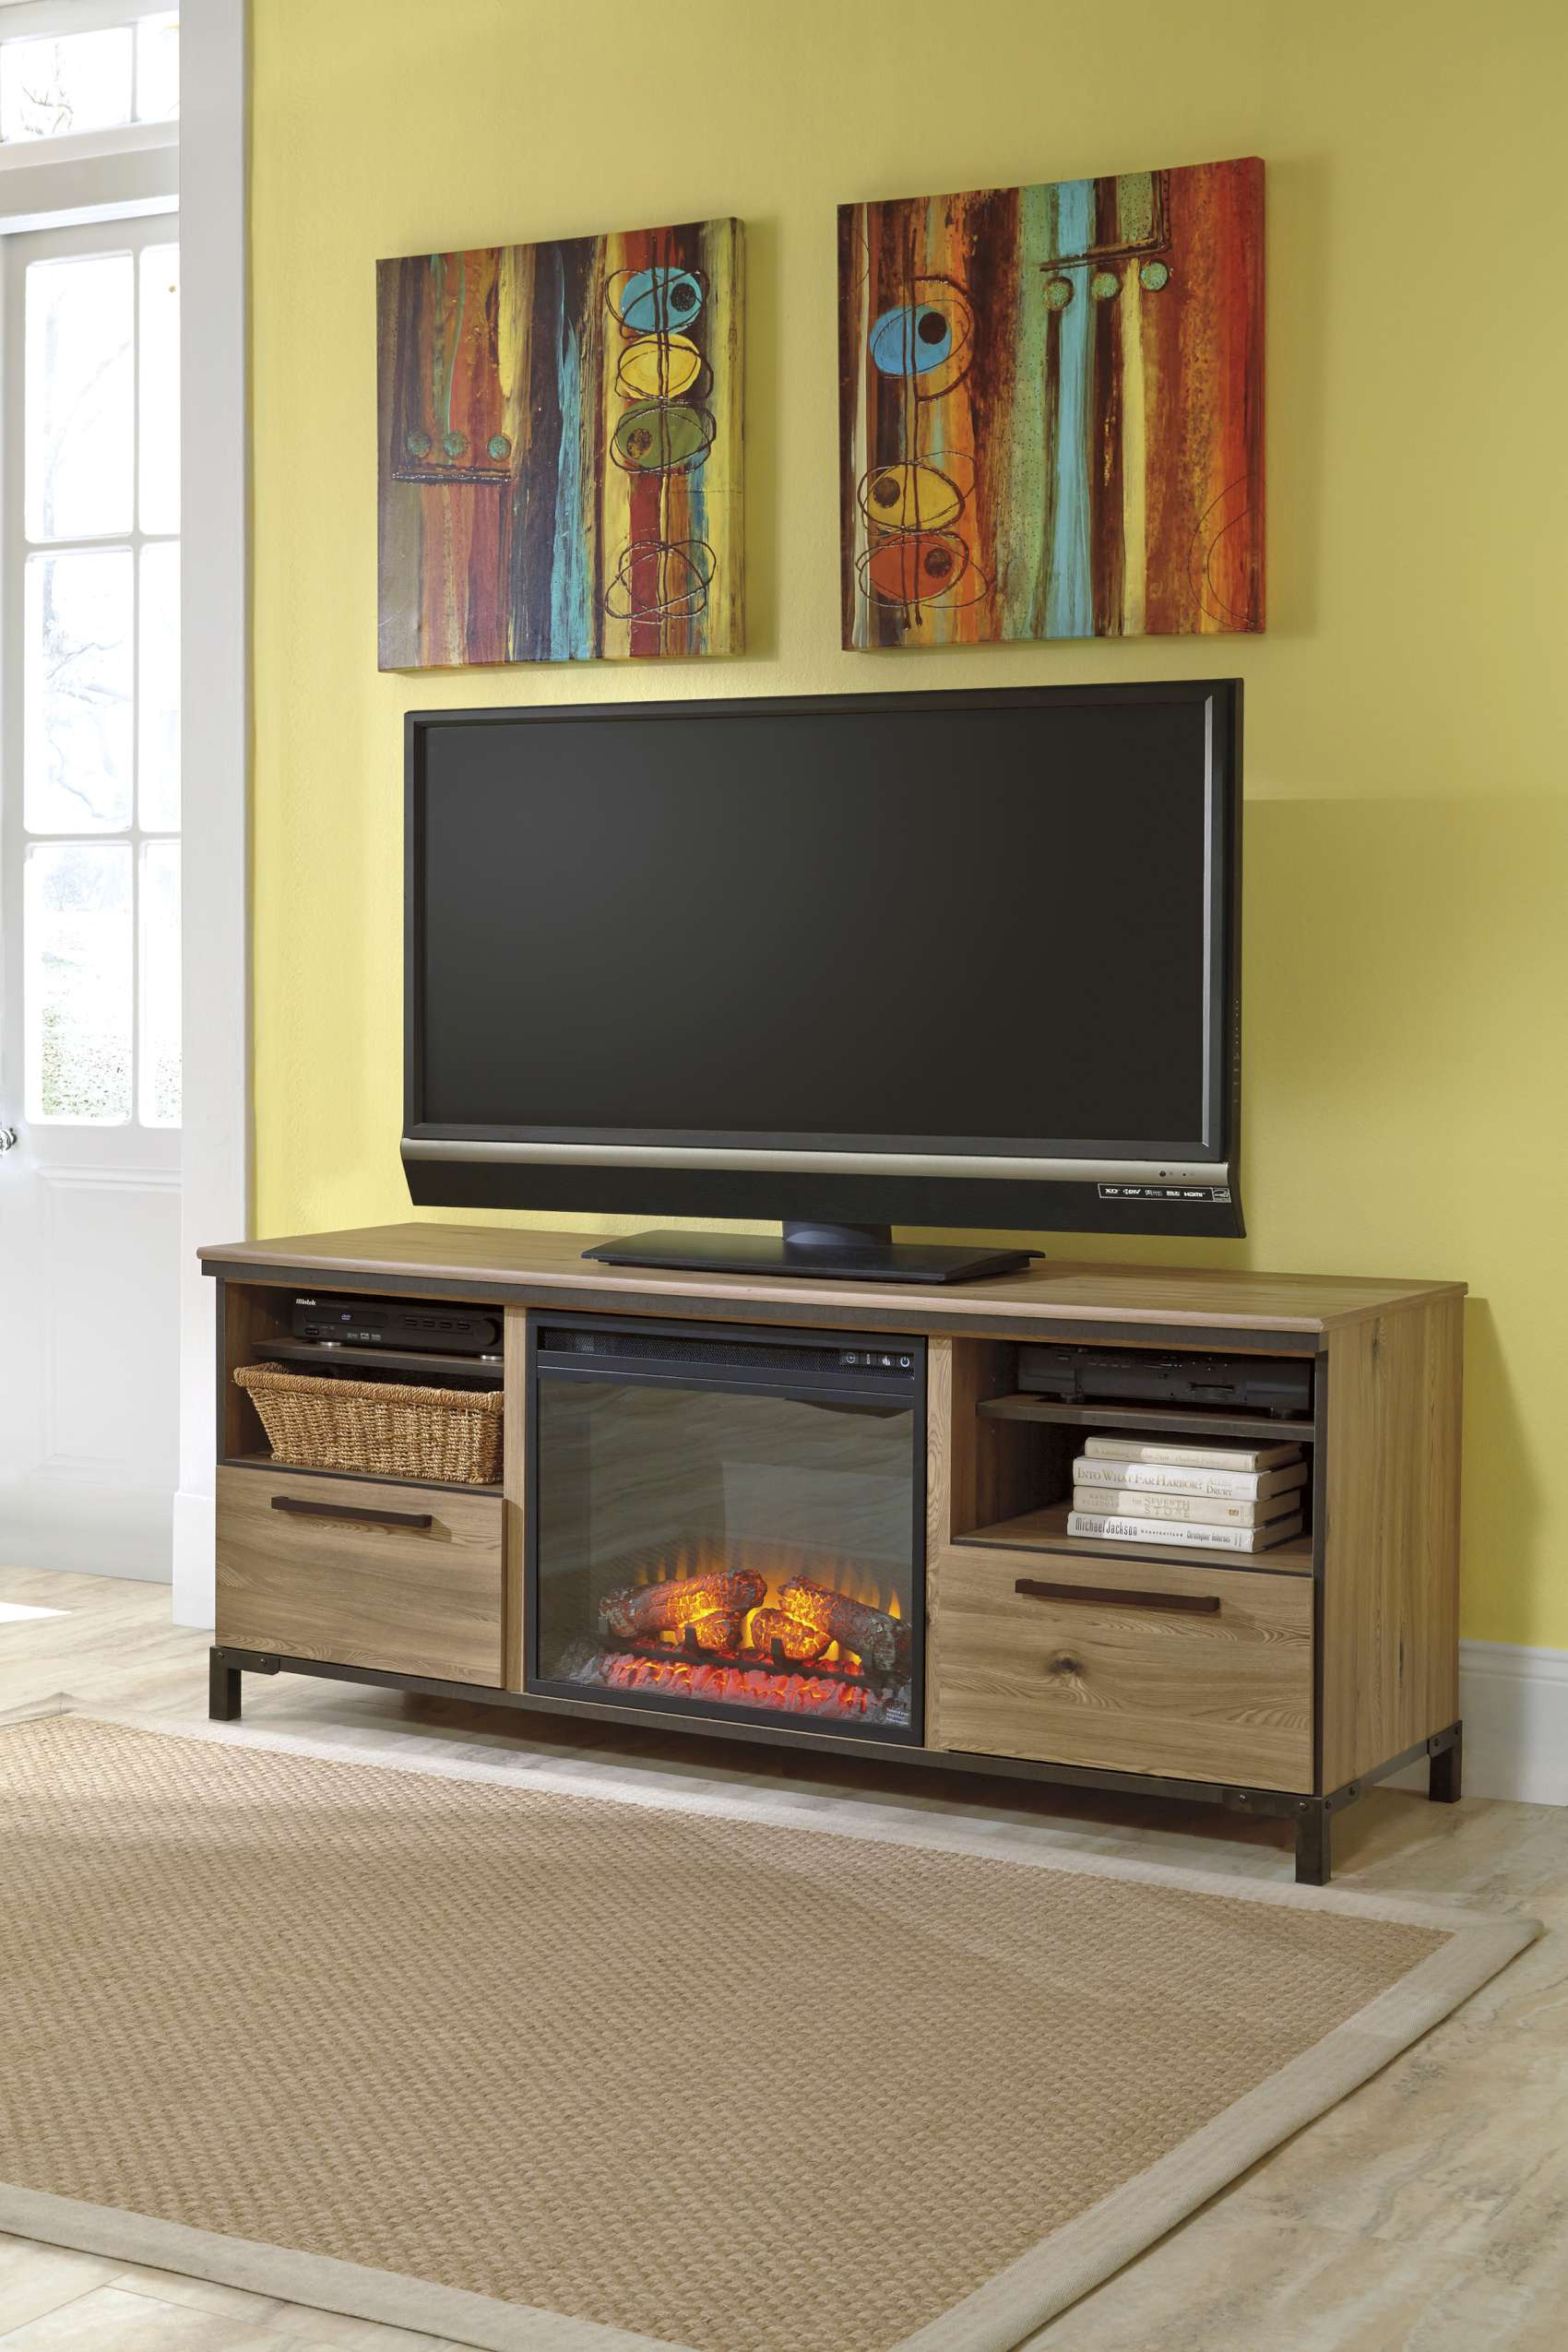 oak costco tv stands with beige sisal rugs on parkay floor plus tryptic art and costco cake stand also costco television stands